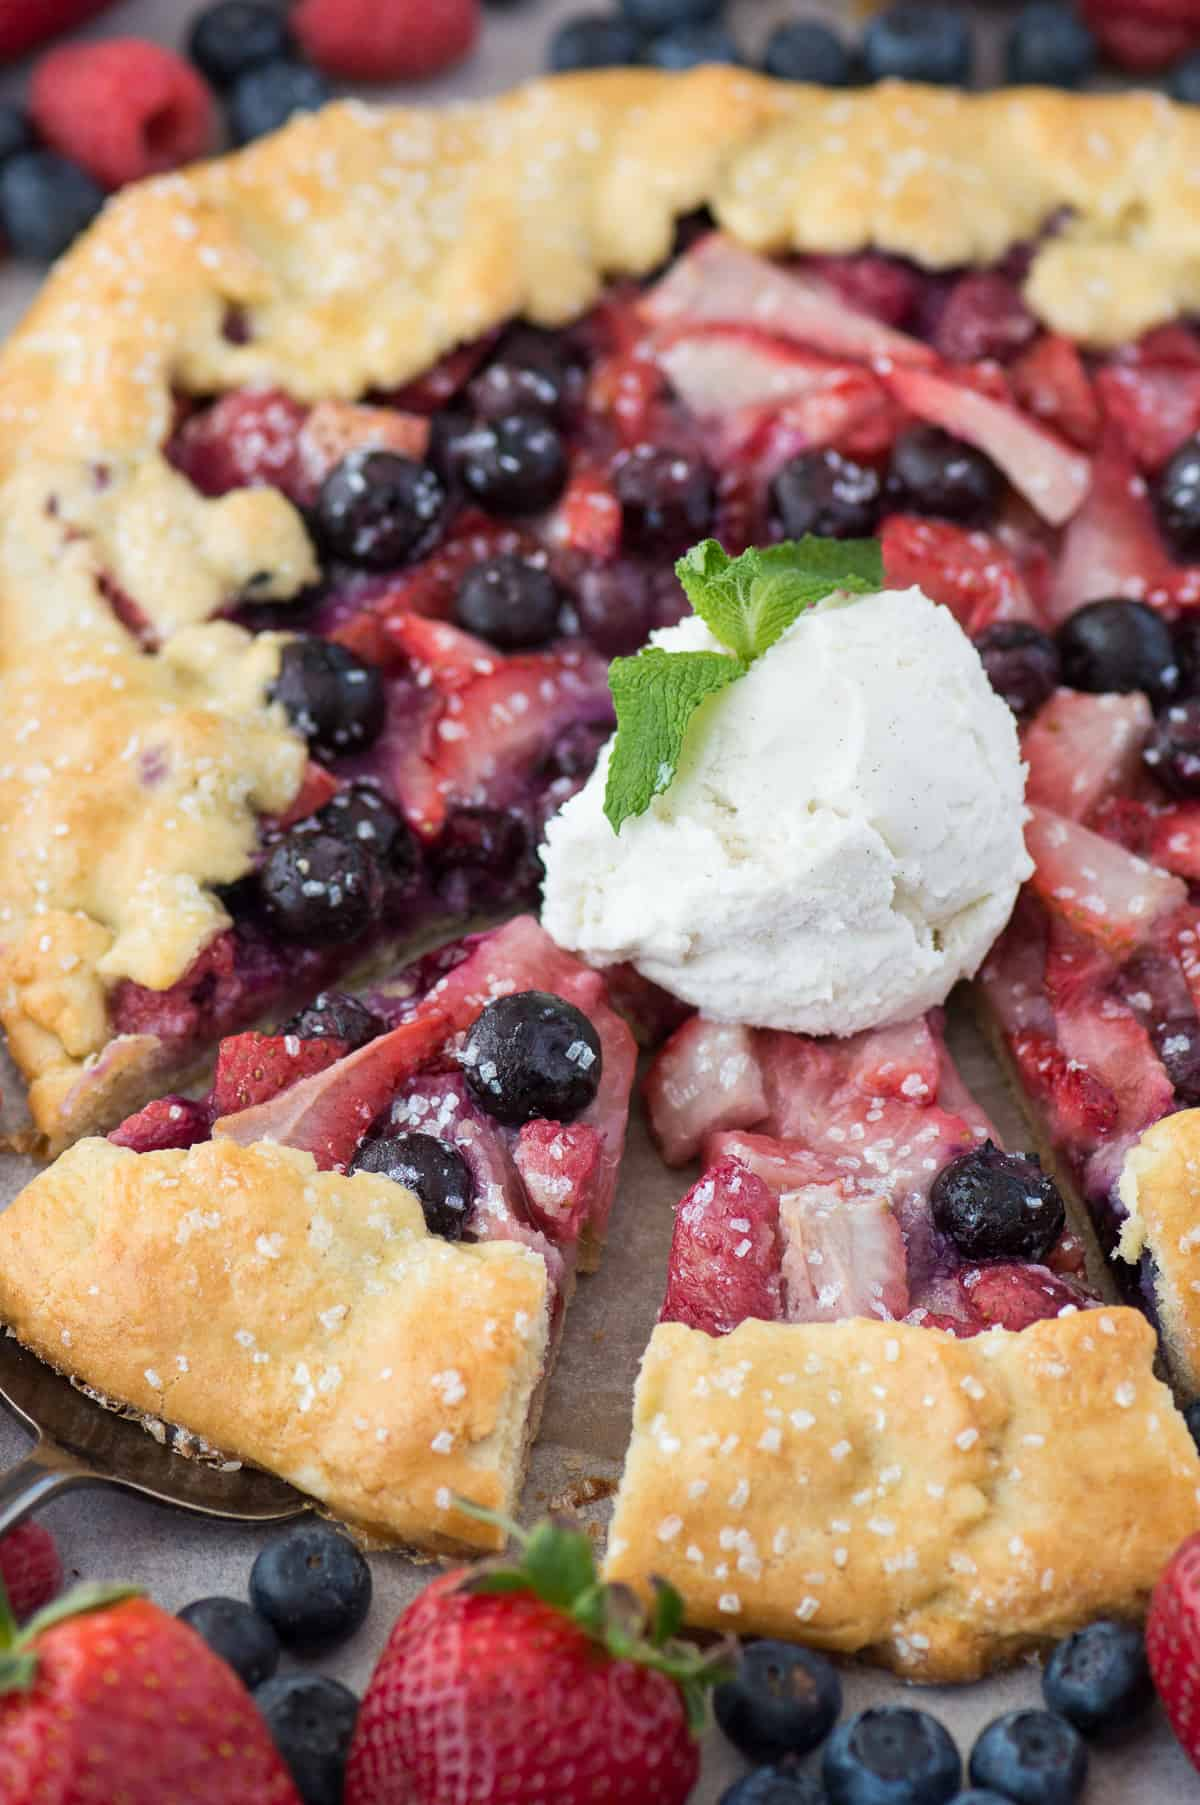 mixed berry galette with vanilla ice cream in the center with 2 slices taken out